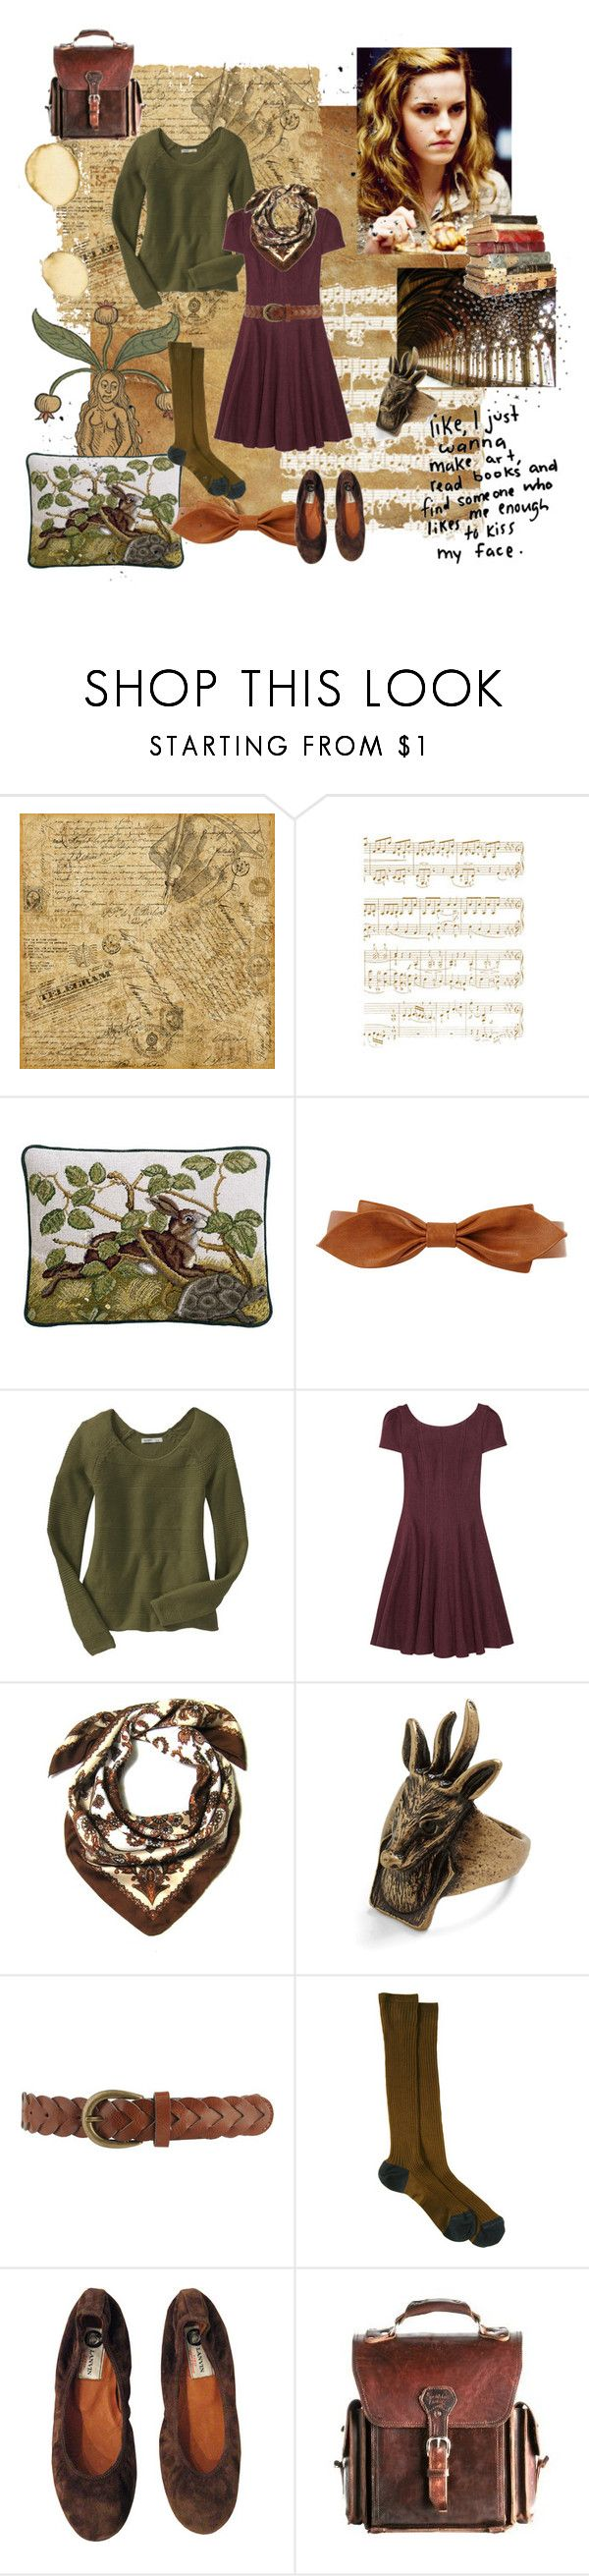 """""""all my skills"""" by whitekirin ❤ liked on Polyvore featuring Retrò, Dorothy Perkins, Old Navy, TIBI, ReLuxe, Forever 21, Maria La Rosa, Lanvin and vintage hermione granger harry potter hogwarts university leraning reading library poetry dreaming s"""